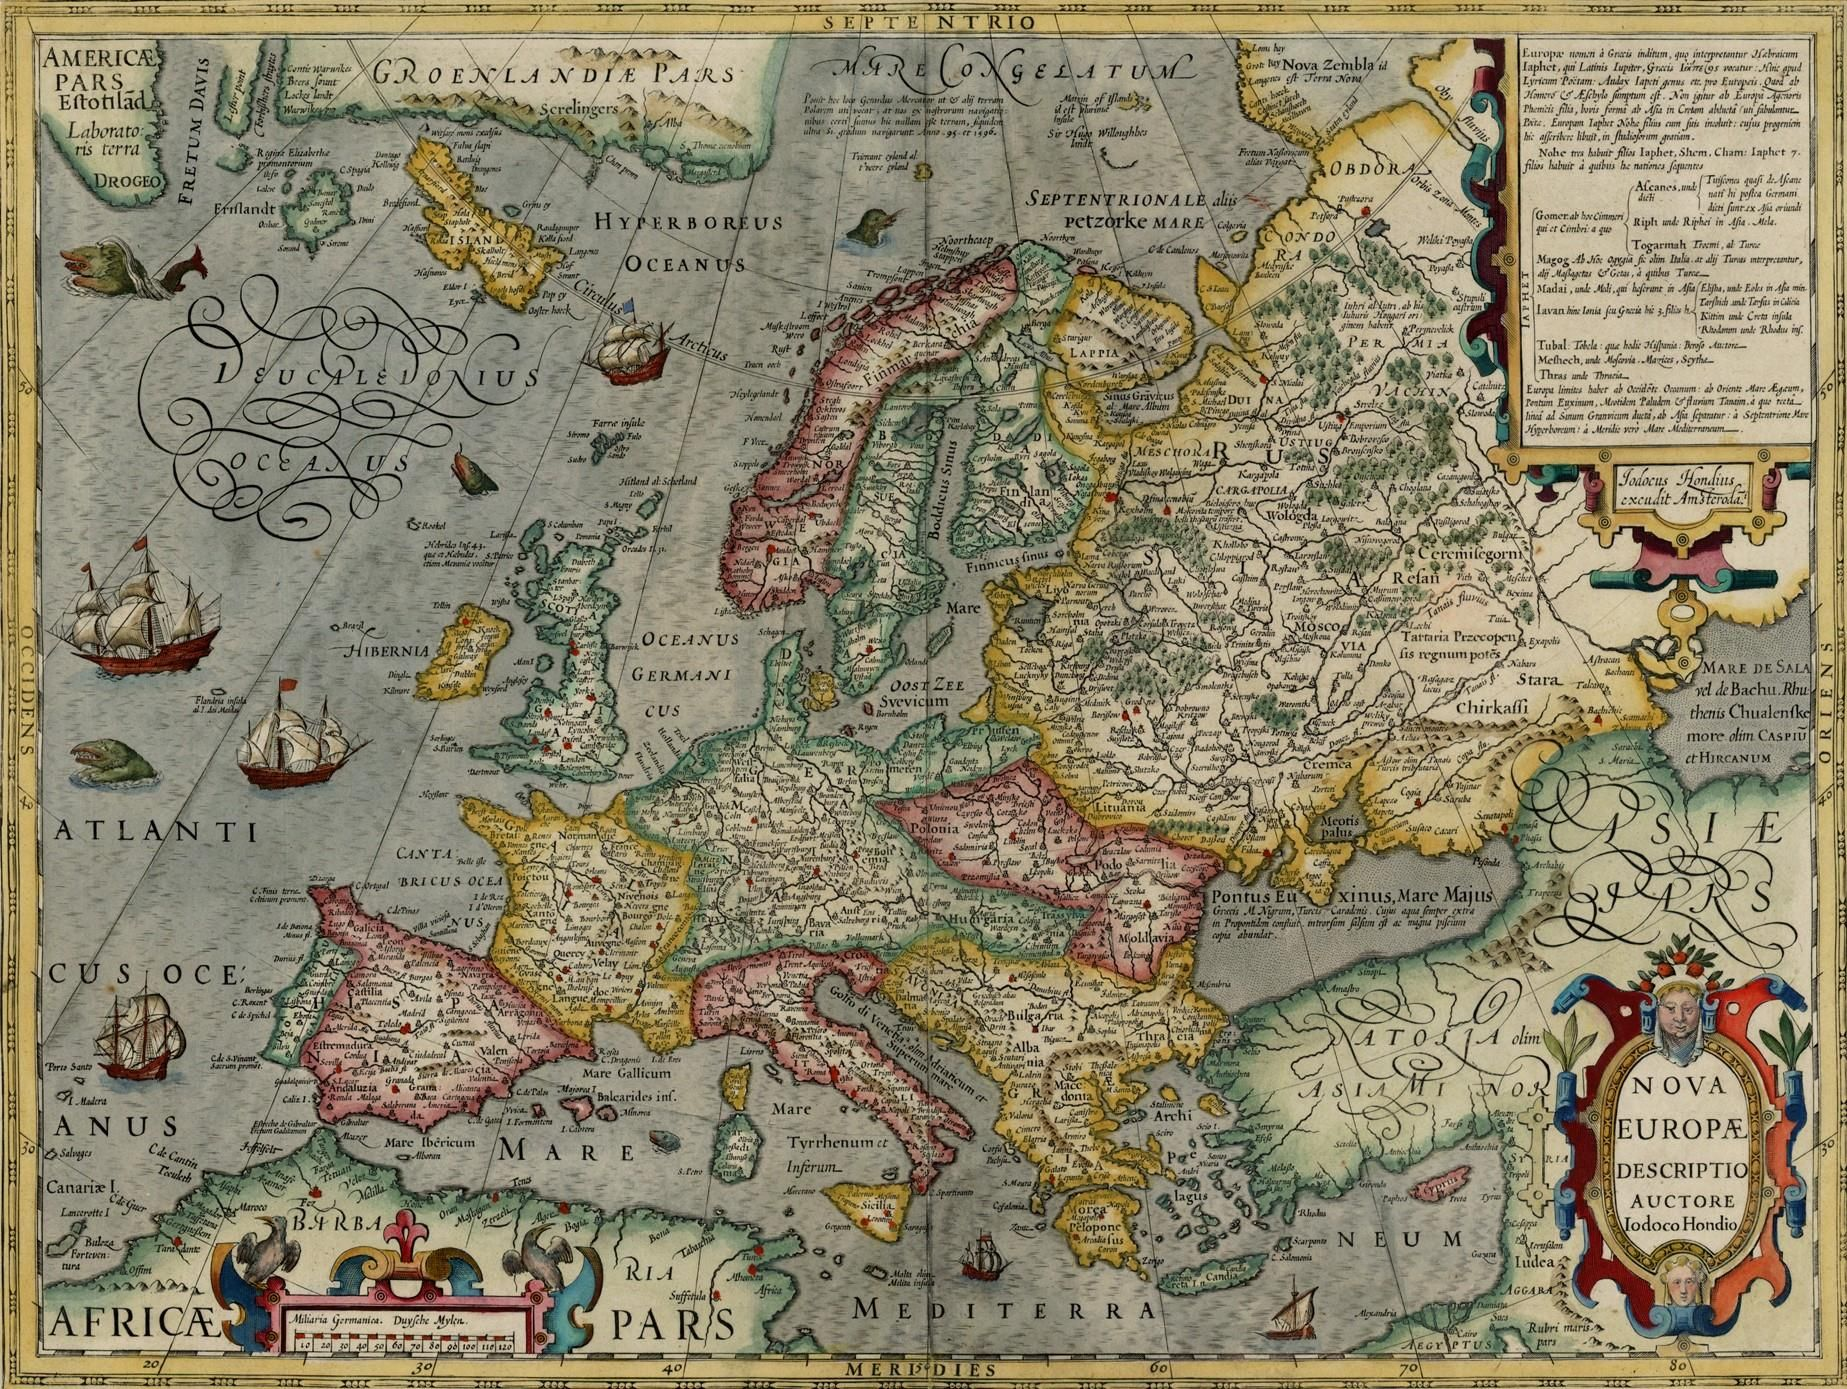 Map of Europe by Jodocus Hondius 1630 The map shows a massive